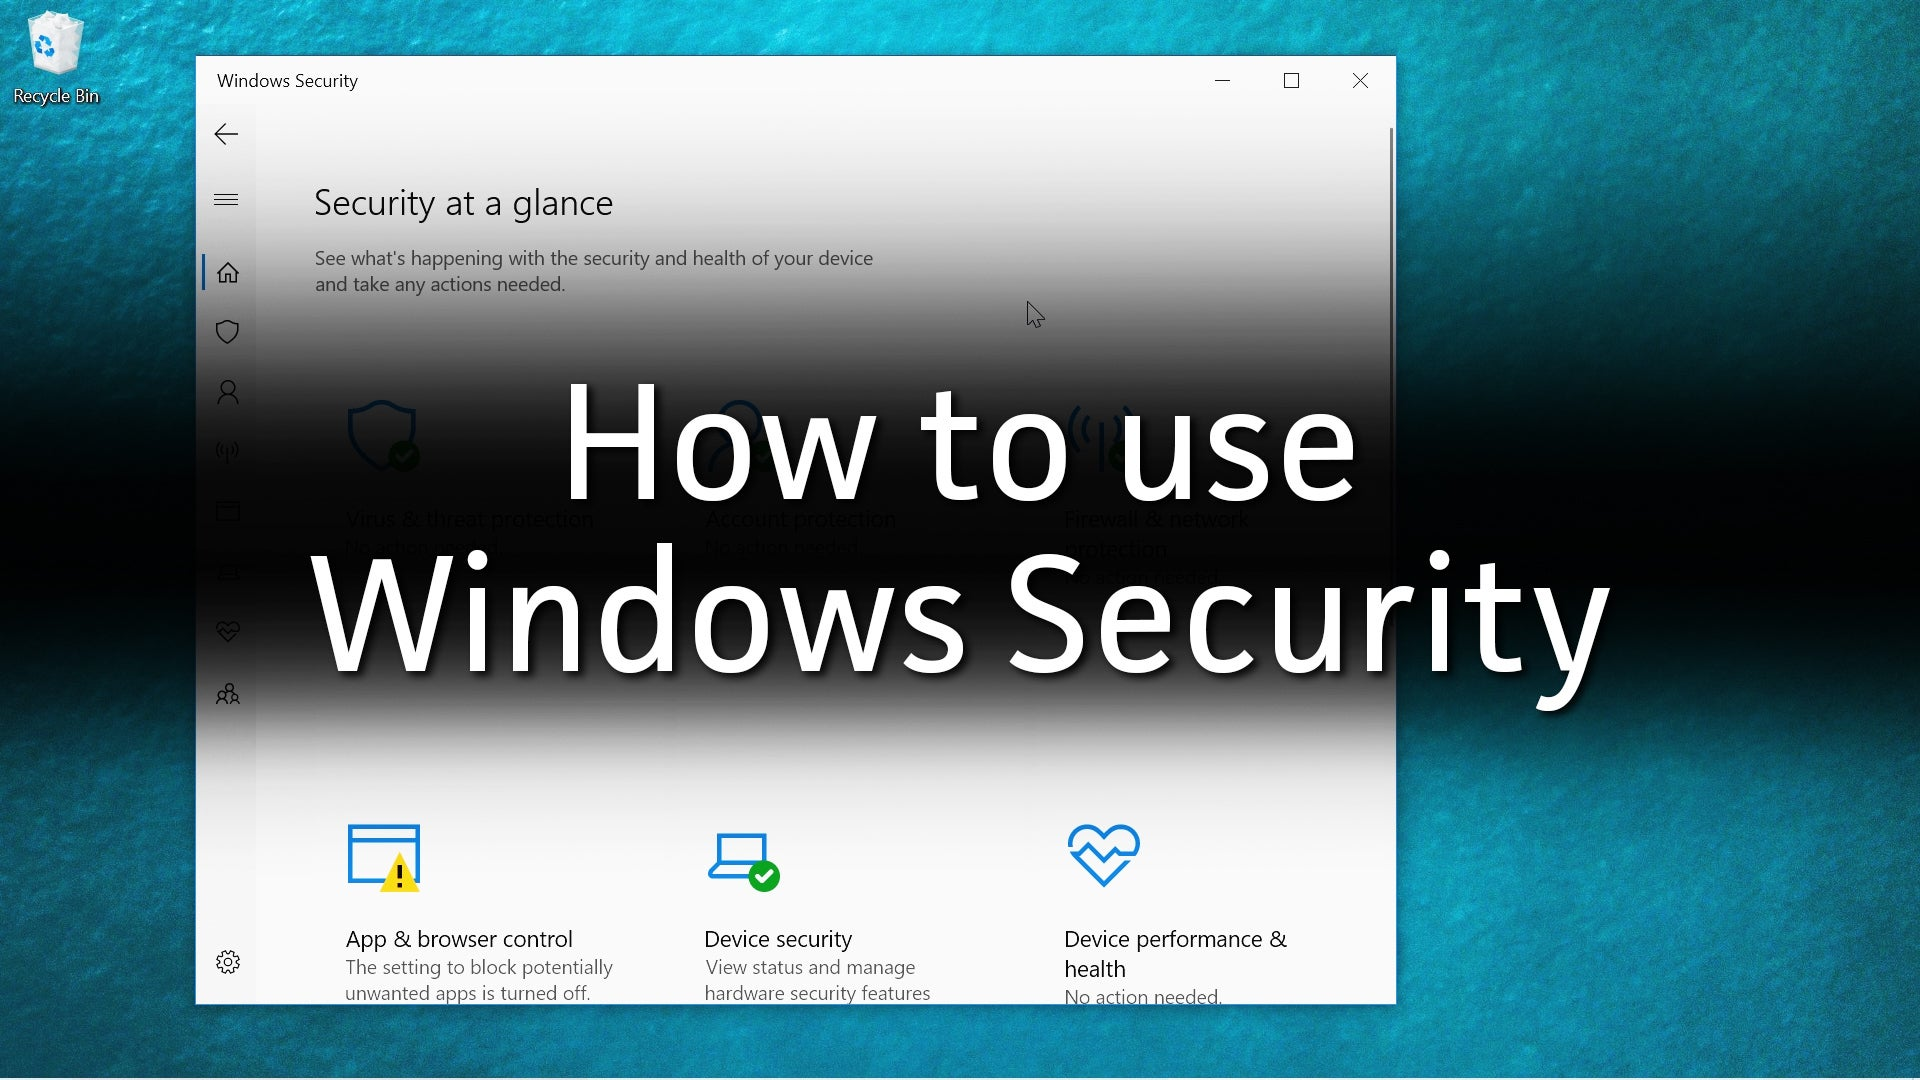 pls20 036 windowssecurity2020 v2